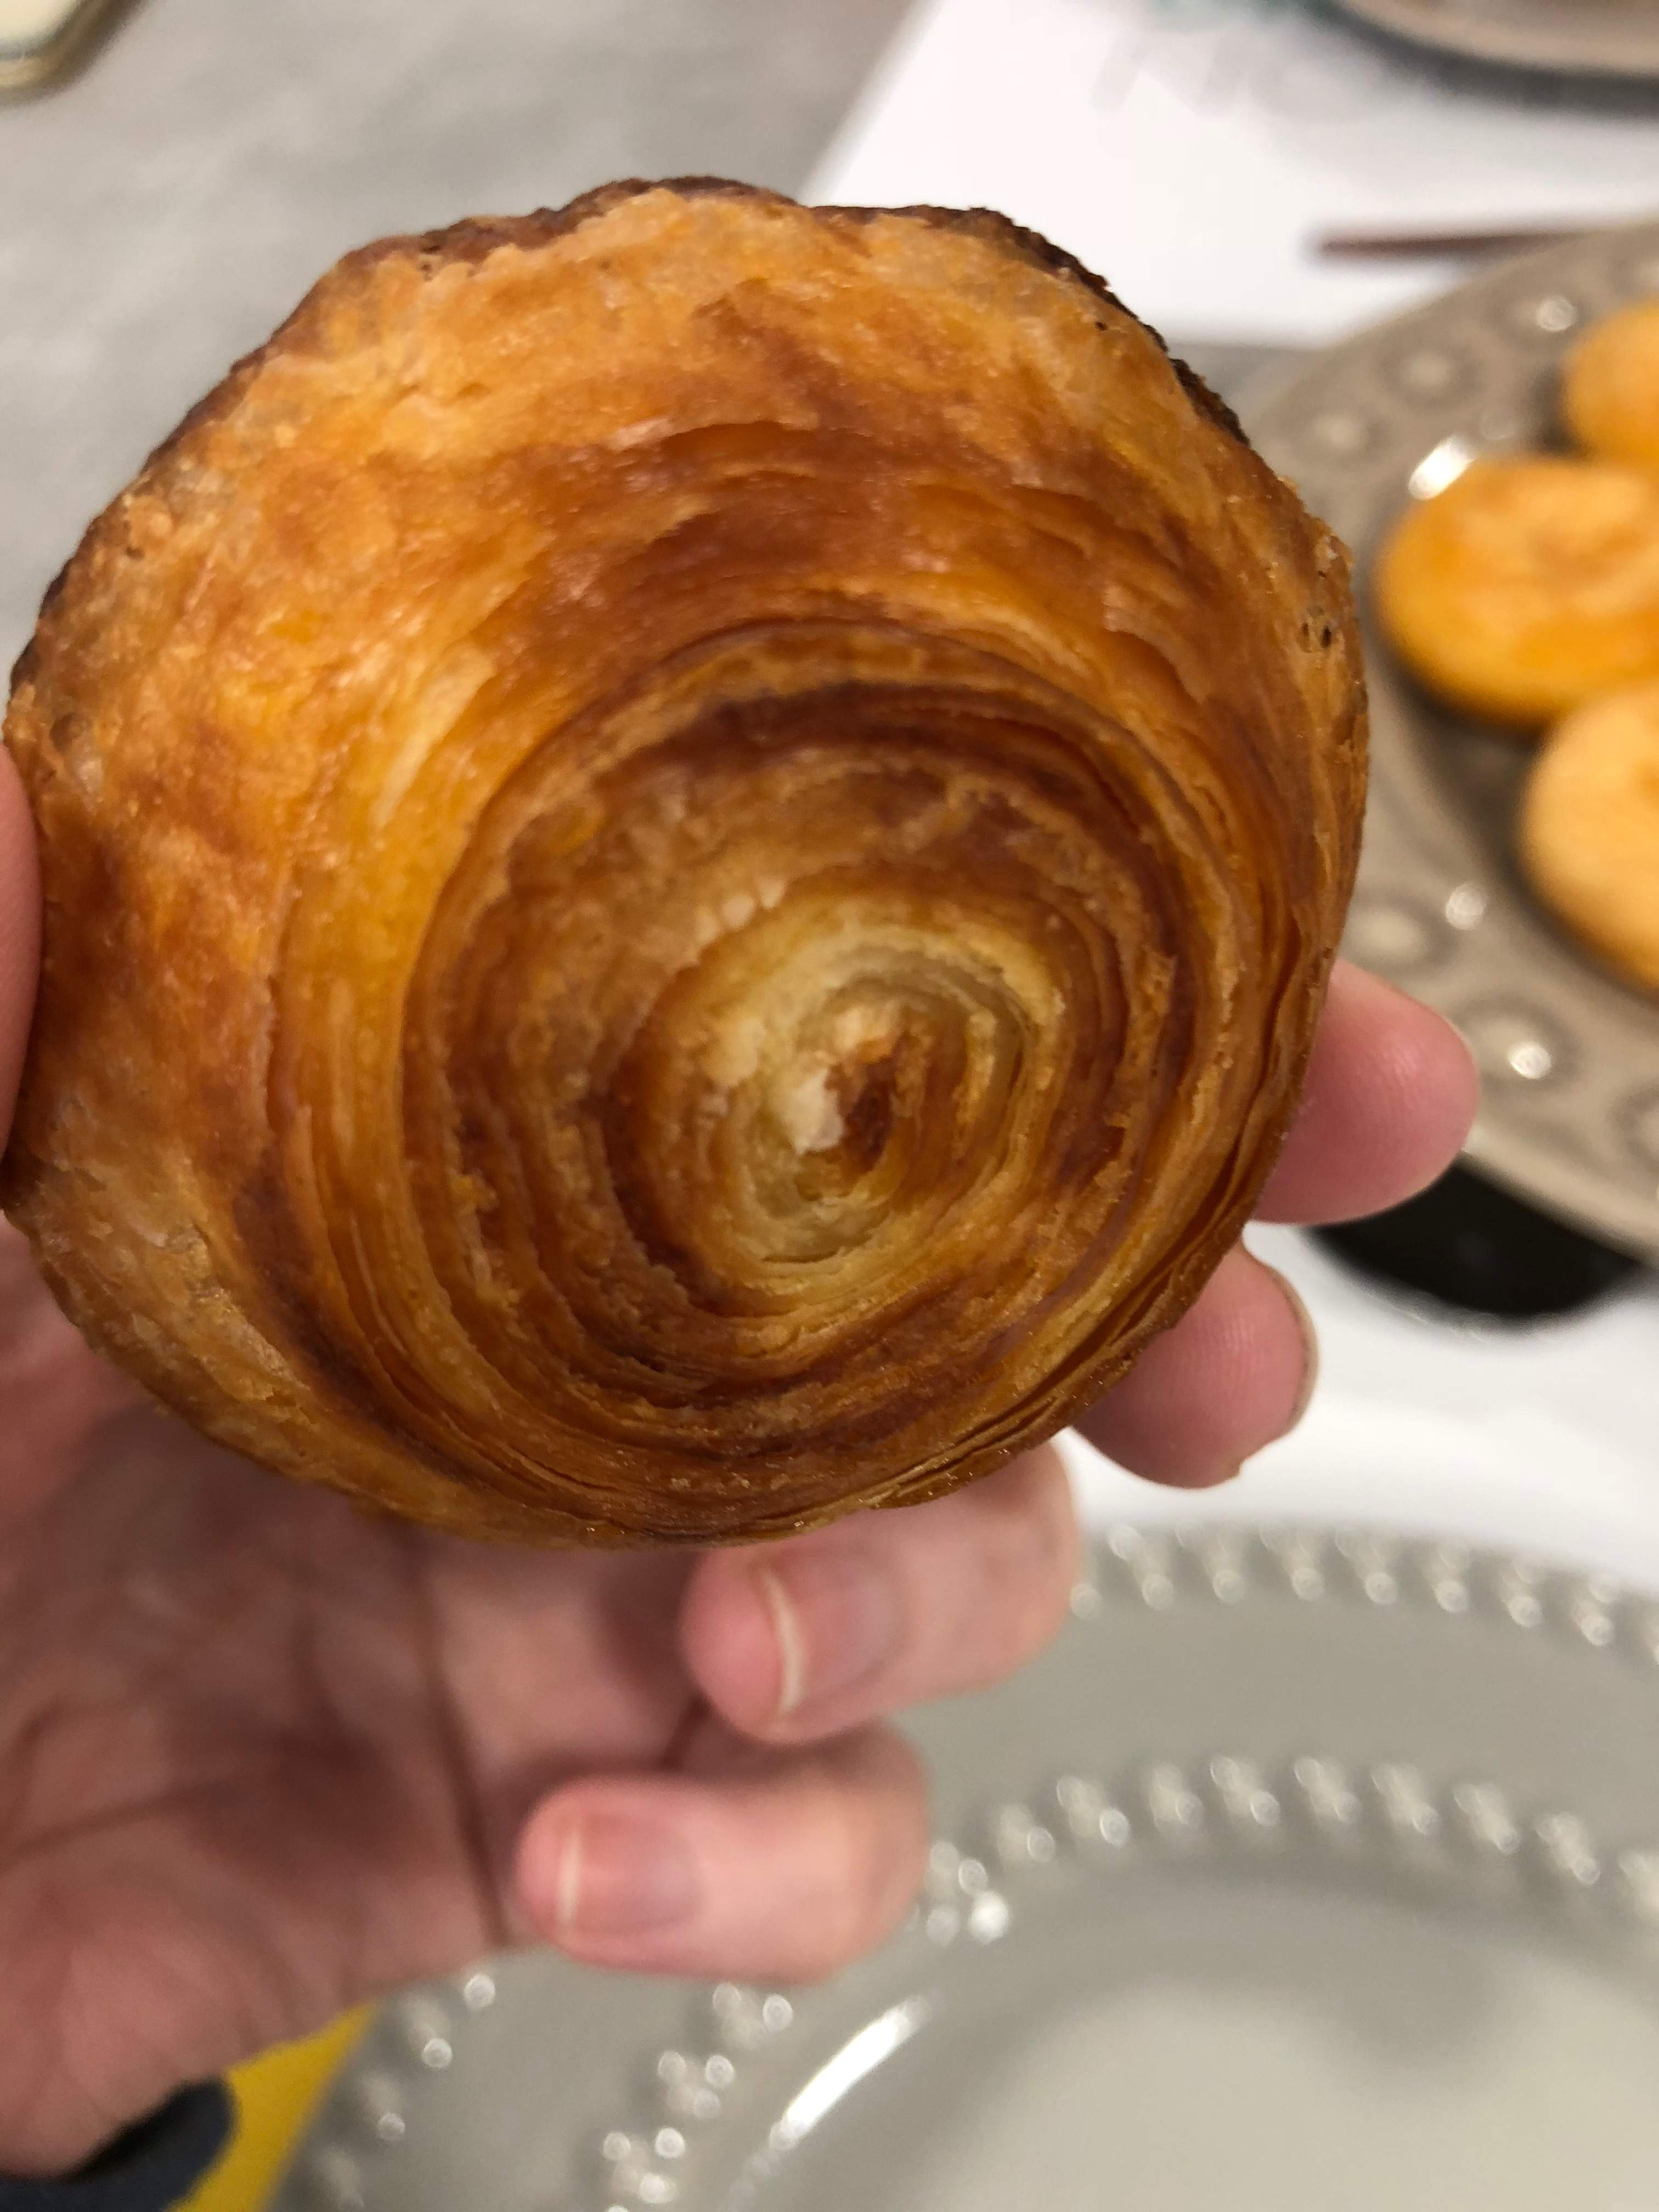 the spirals on the bottom of a pastel de nata is the secret to finding out if a pastel de nata is handmade or not